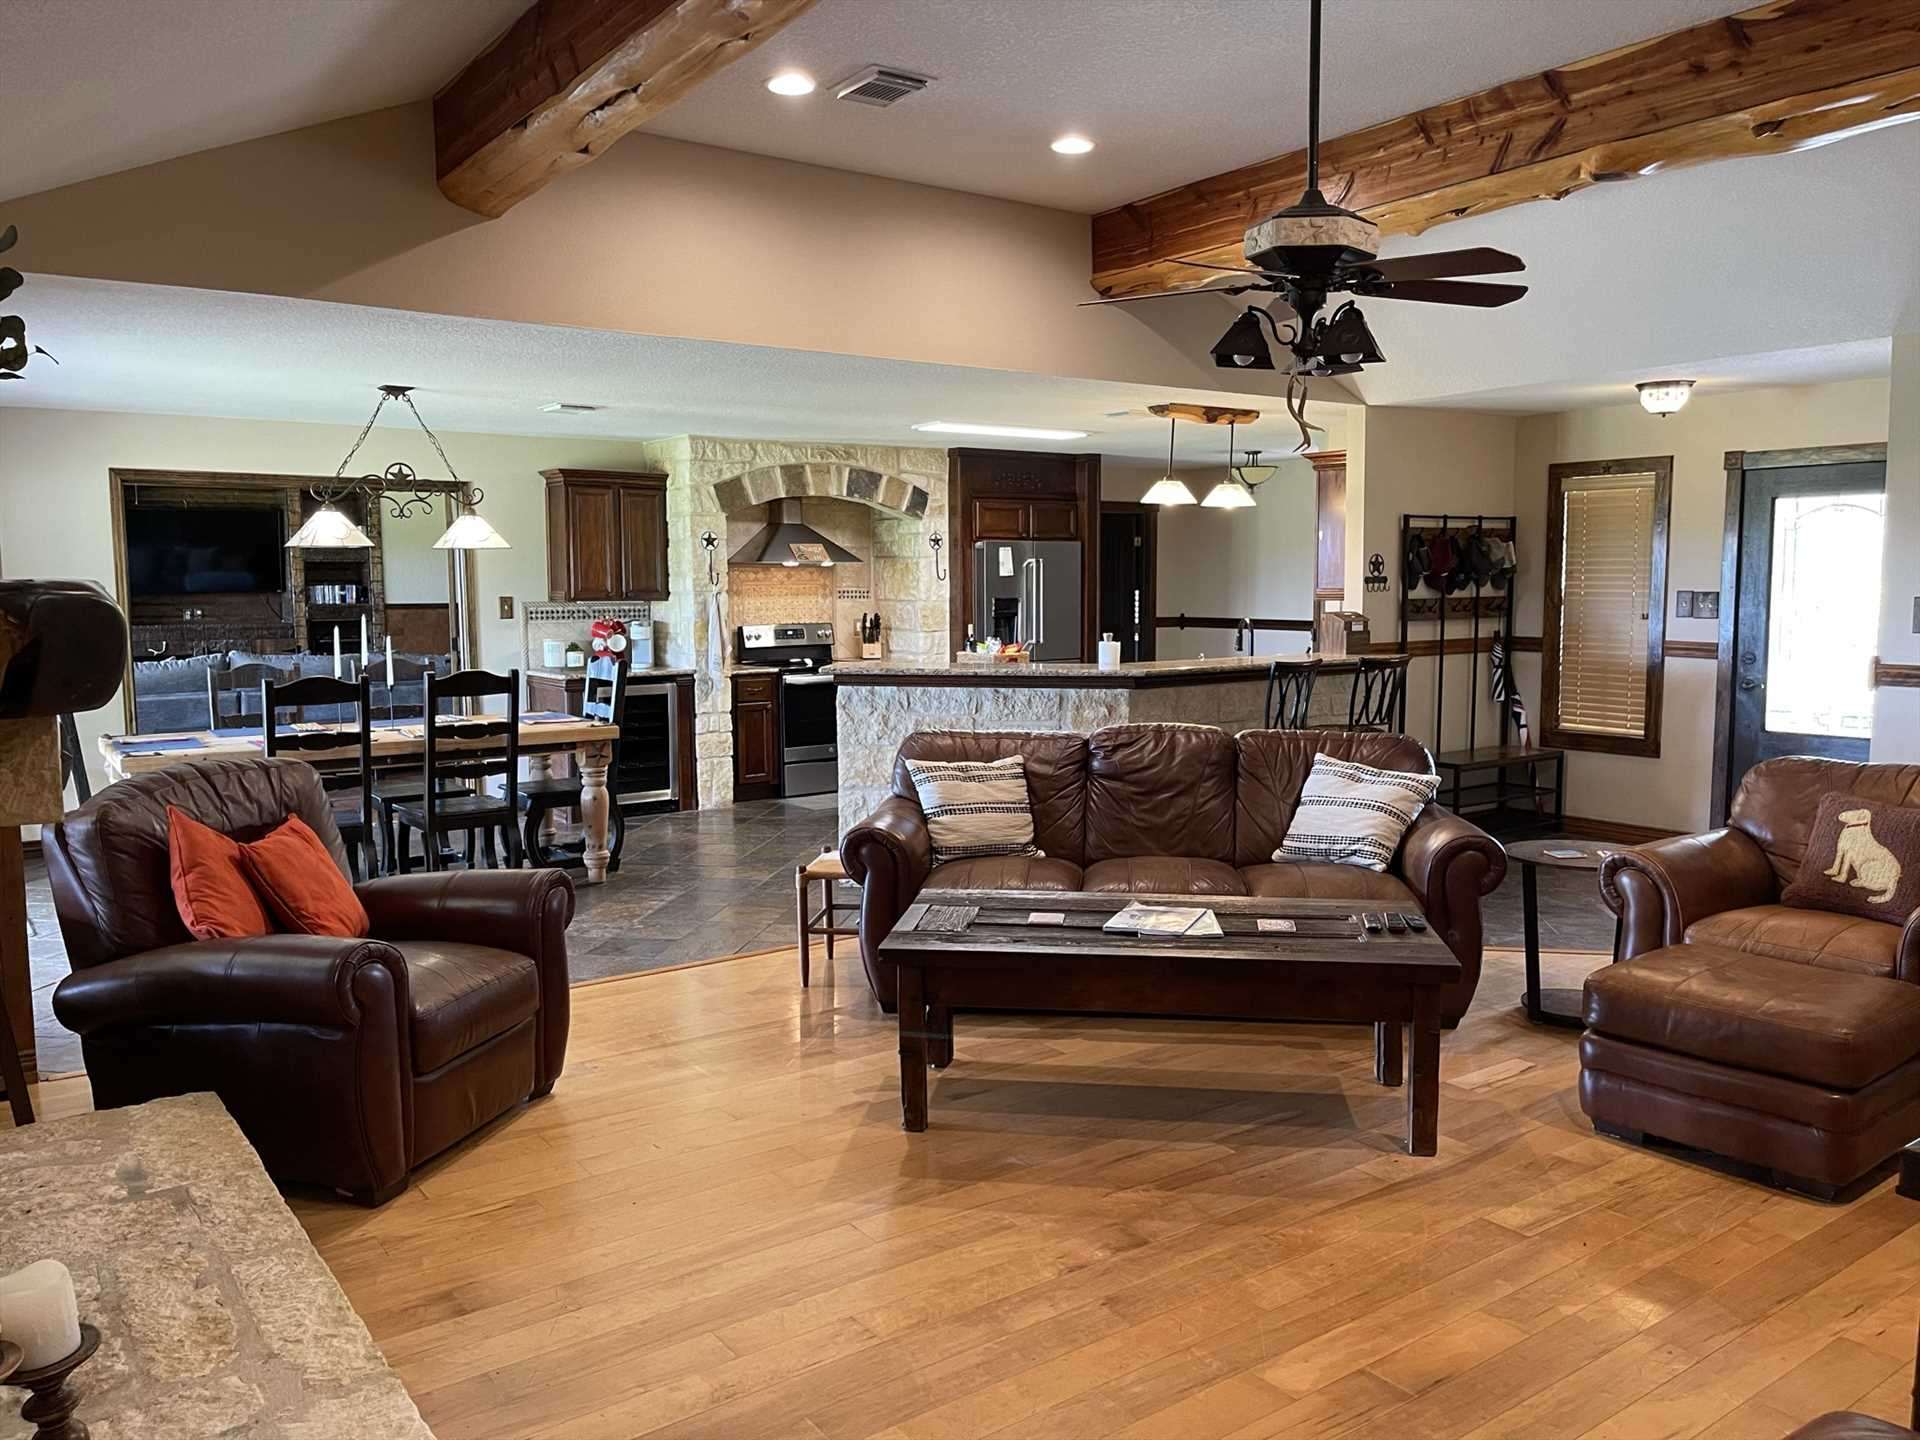 The wide-open layout of the living area, dining area, and kitchen gives your crew a sense of togetherness, even when they're in different rooms.